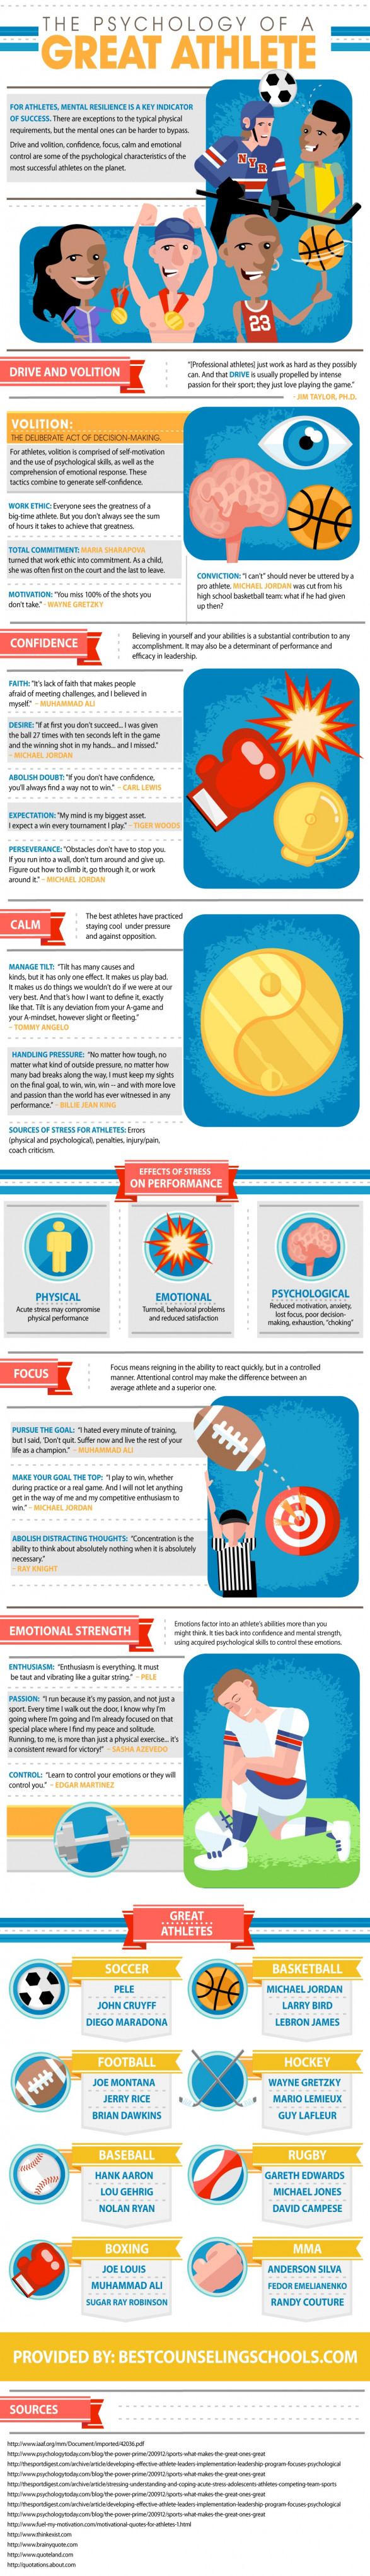 The Psychology of a Great Athlete